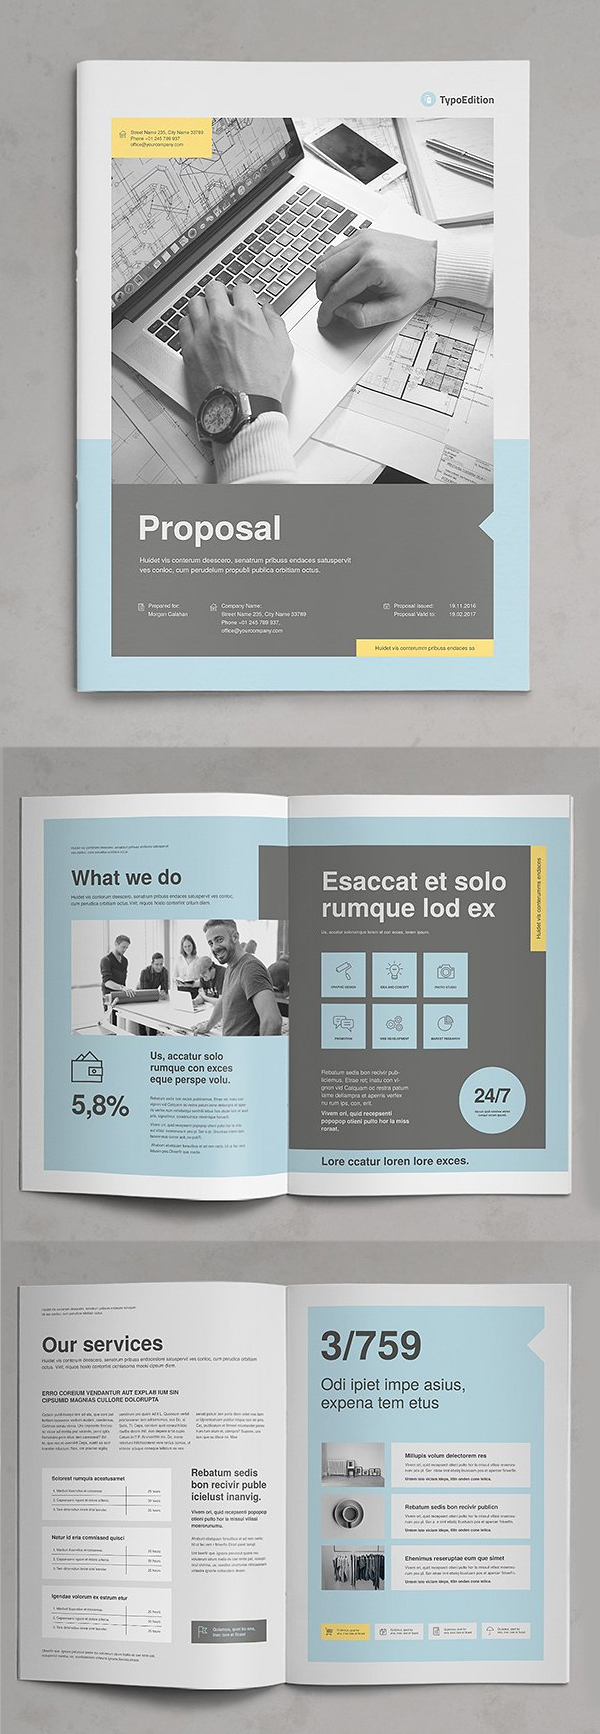 Professional Business Proposal Templates Design - 19